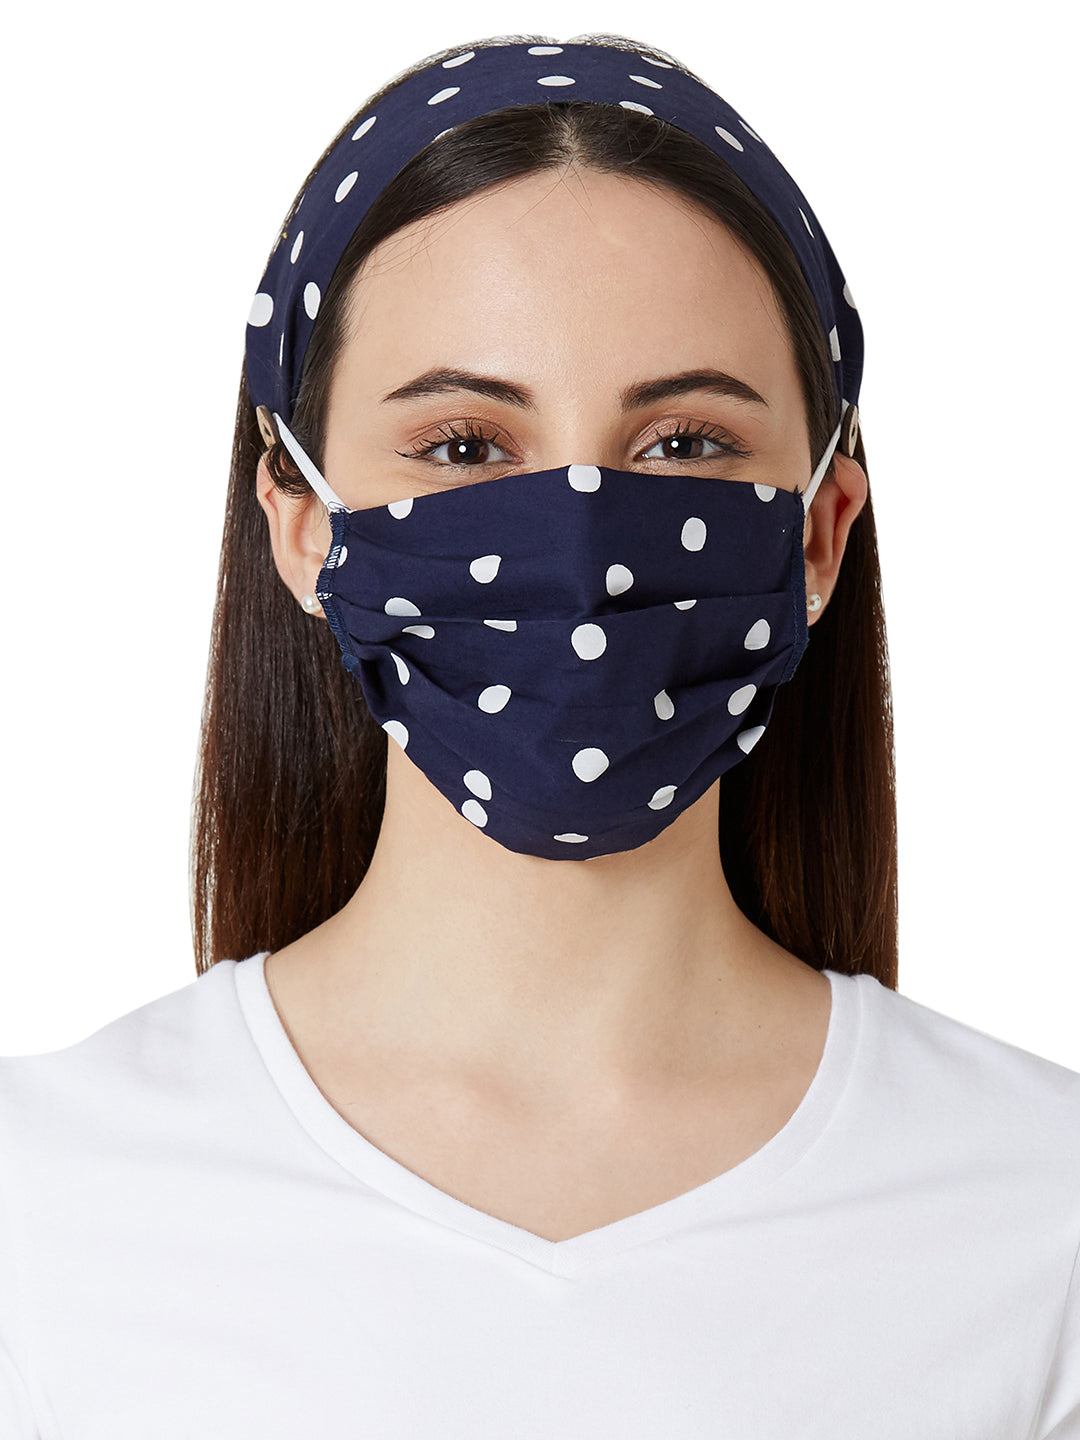 Set of 4 Trendy Printed Masks & Headbands Combo